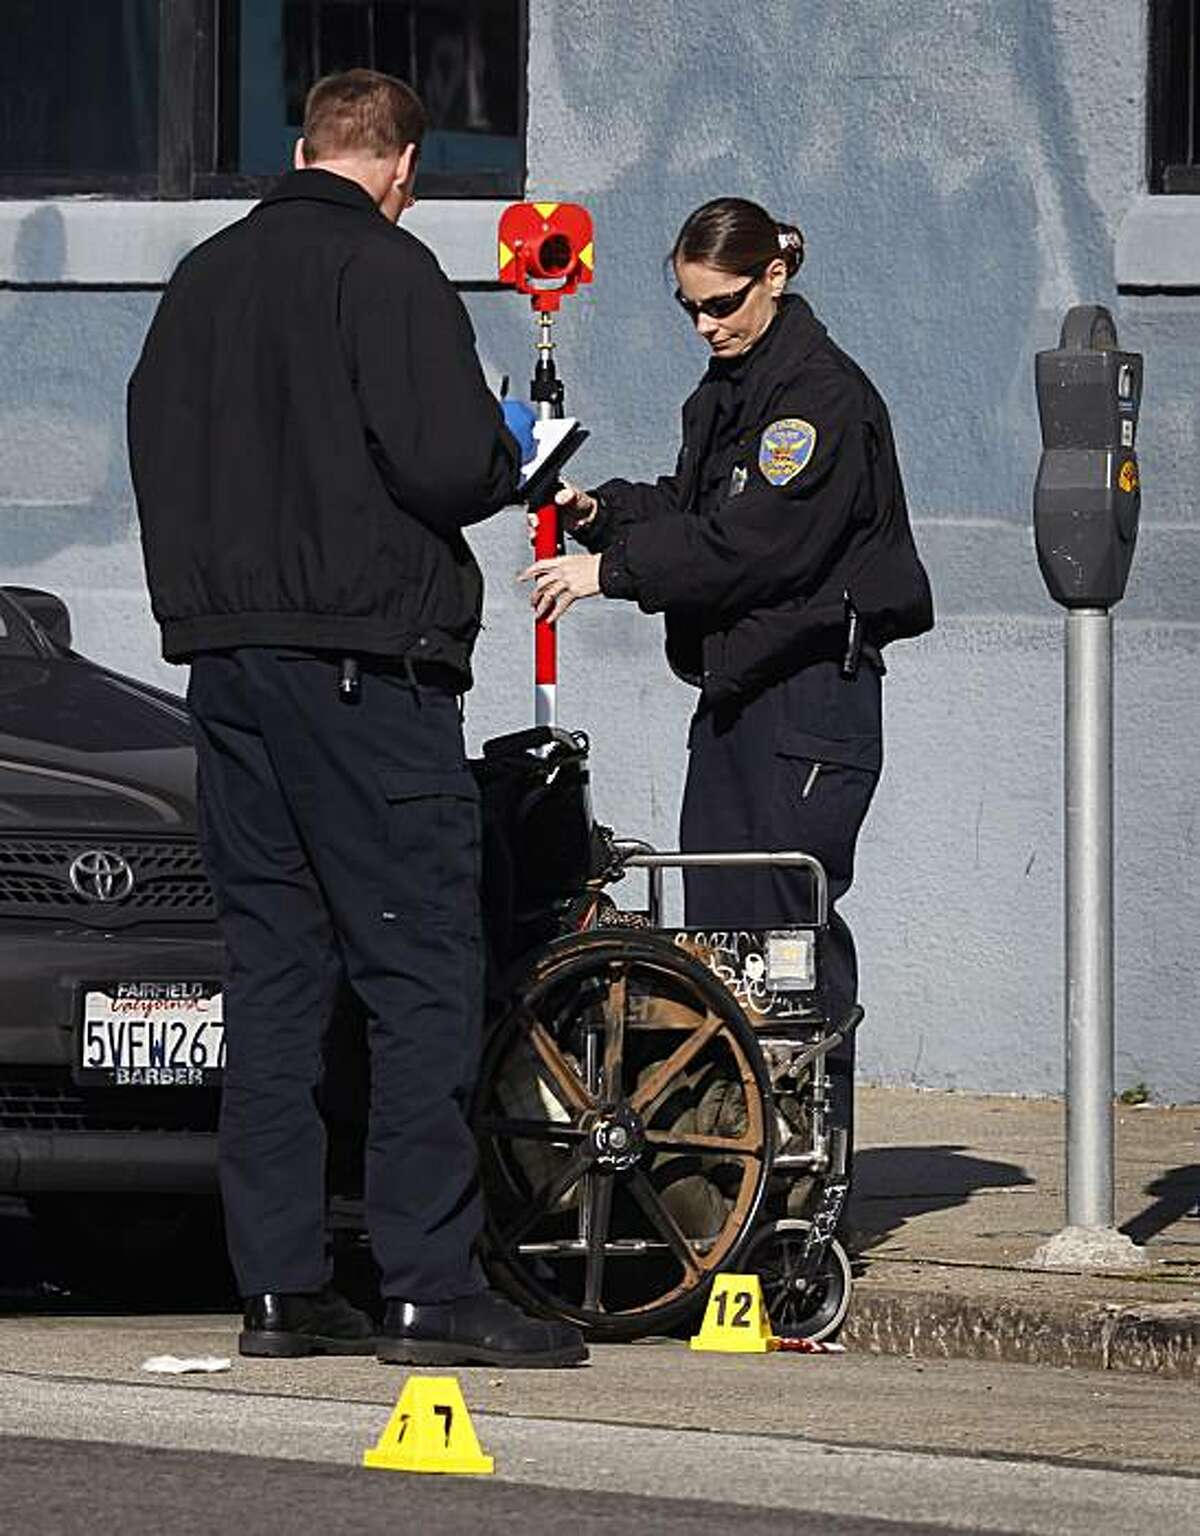 Crime scene investigators gather evidence after police officers shot a man in a wheelchair who reportedly threatened them with a knife in San Francisco, Calif., on Tuesday, Jan. 4, 2011. Witnesses say the man had earlier slashed the tires of several cars parked nearby.